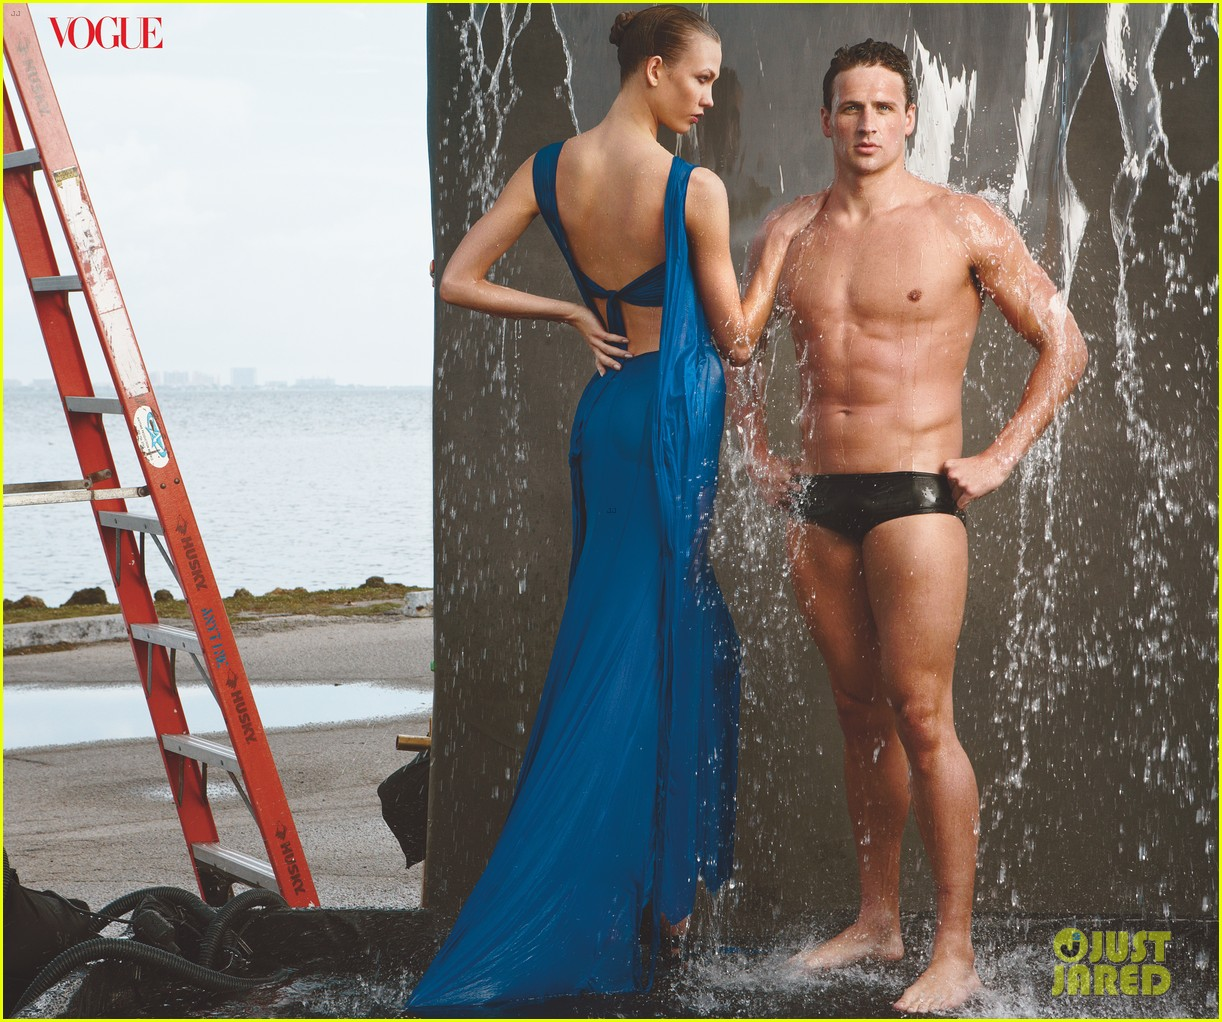 serena williams ryan lochte vogue june 2012 032662326